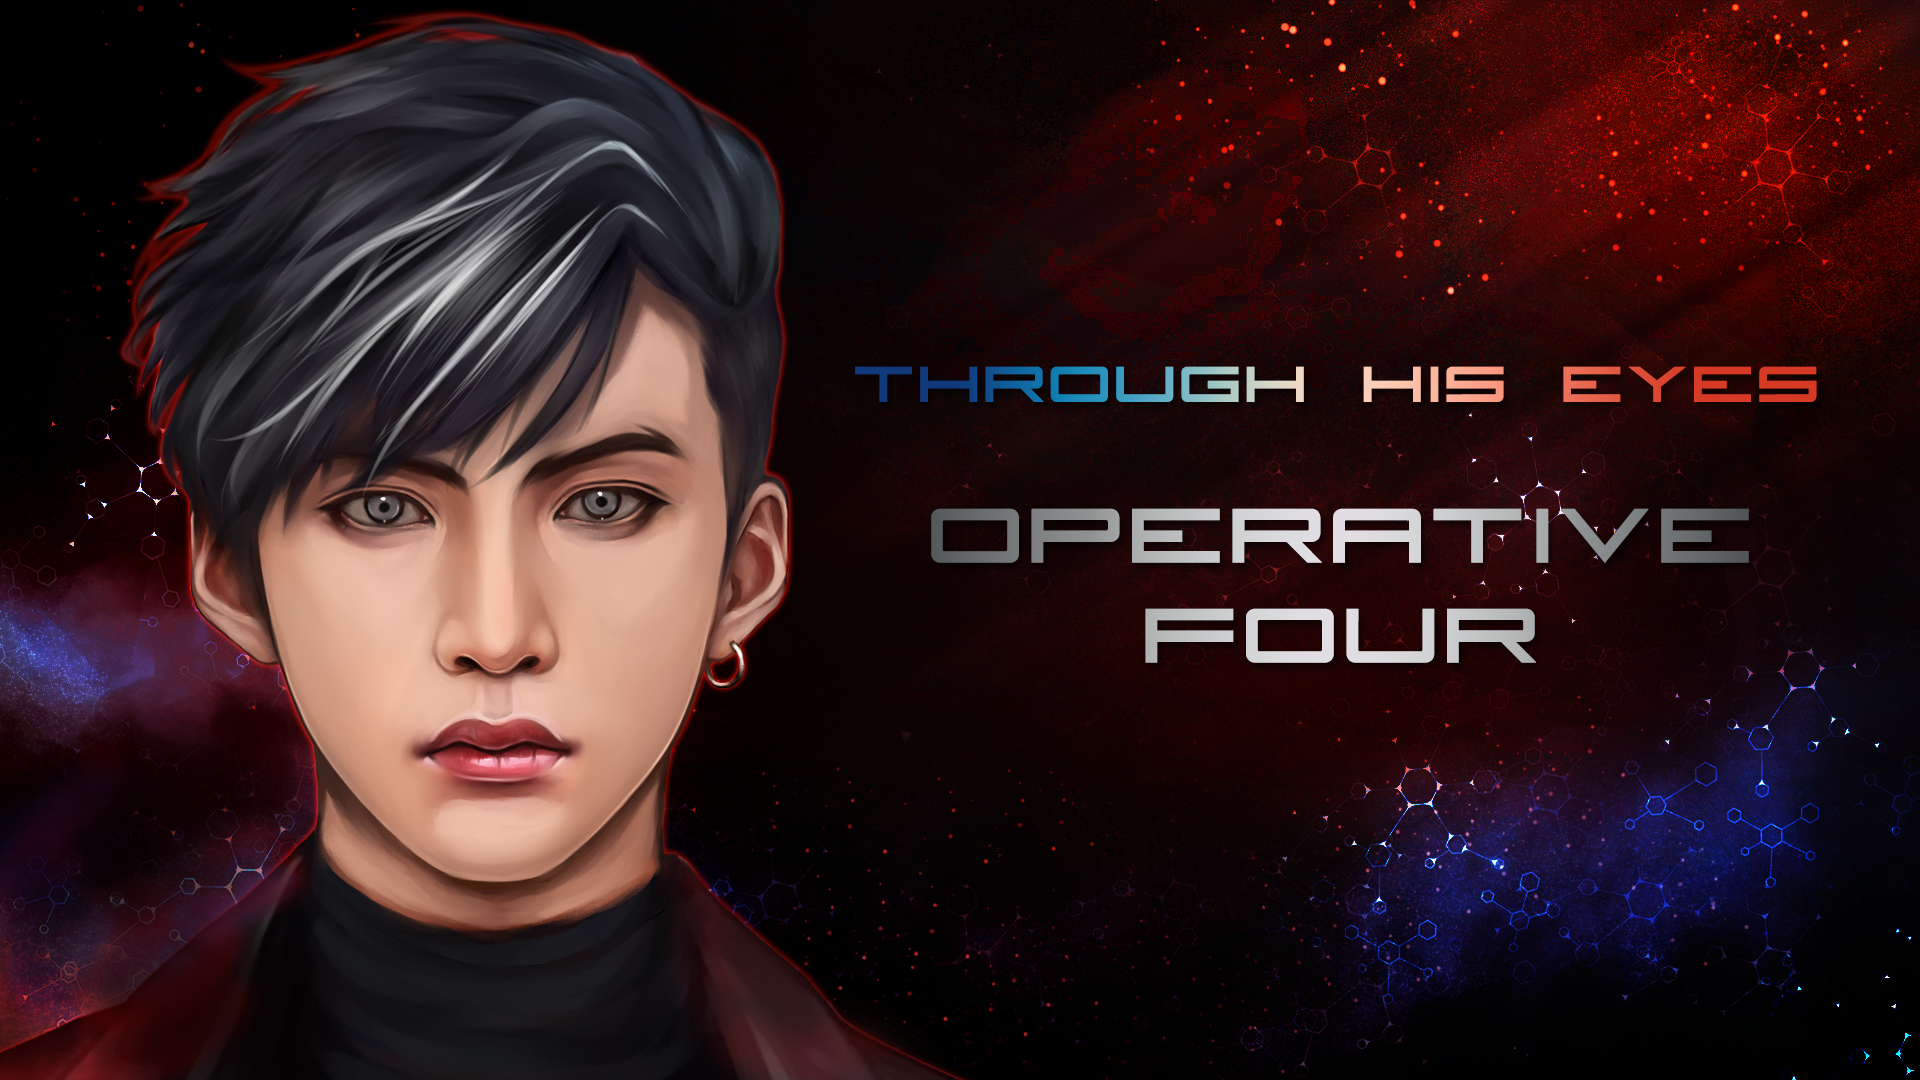 Have you ever wondered what he was thinking? See for yourself...    Through His Eyes: Four Out Now!